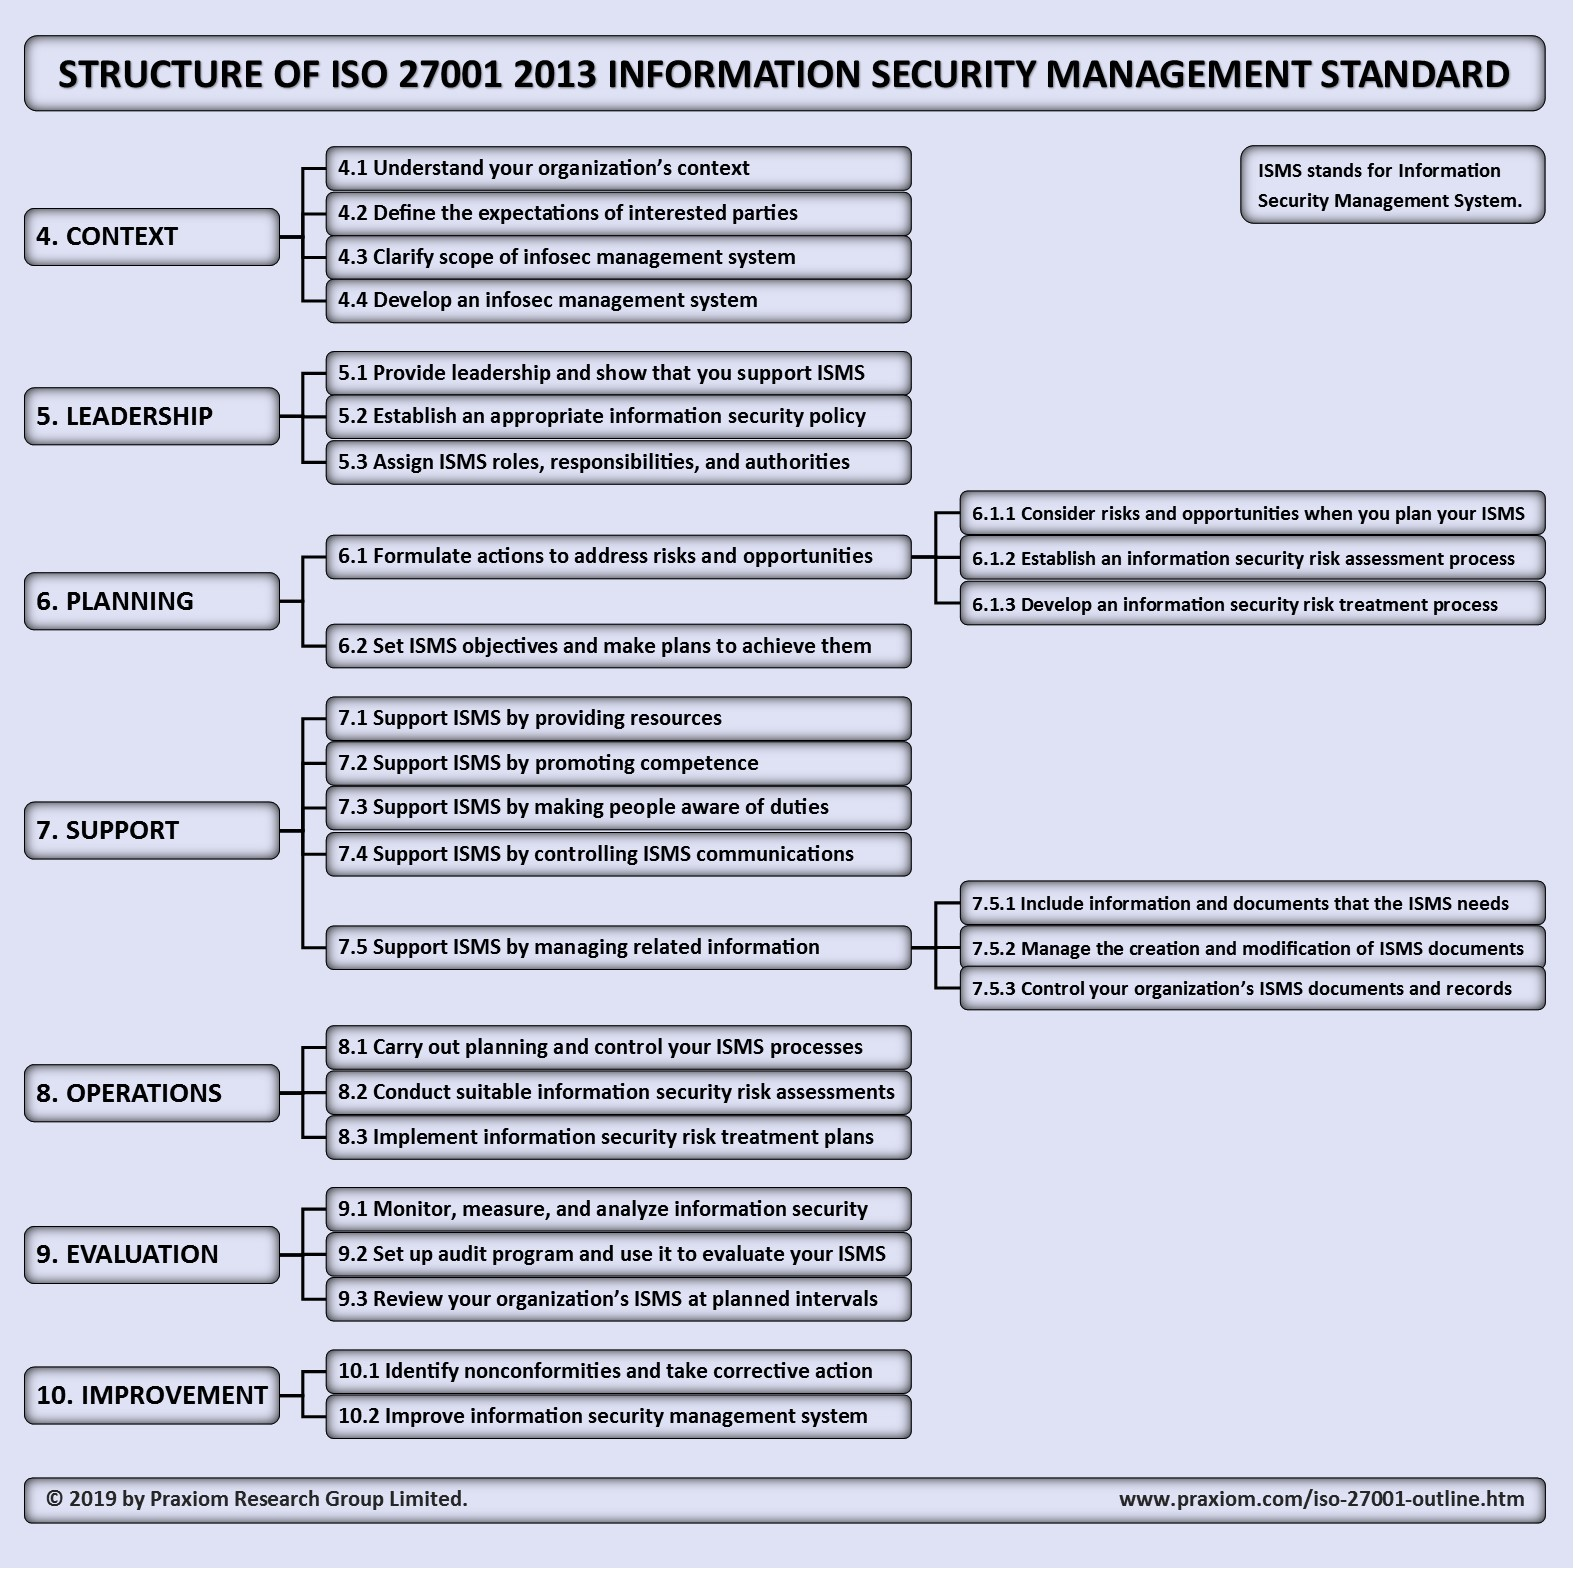 Outline of ISO IEC 27001 2013 Information Security Standard